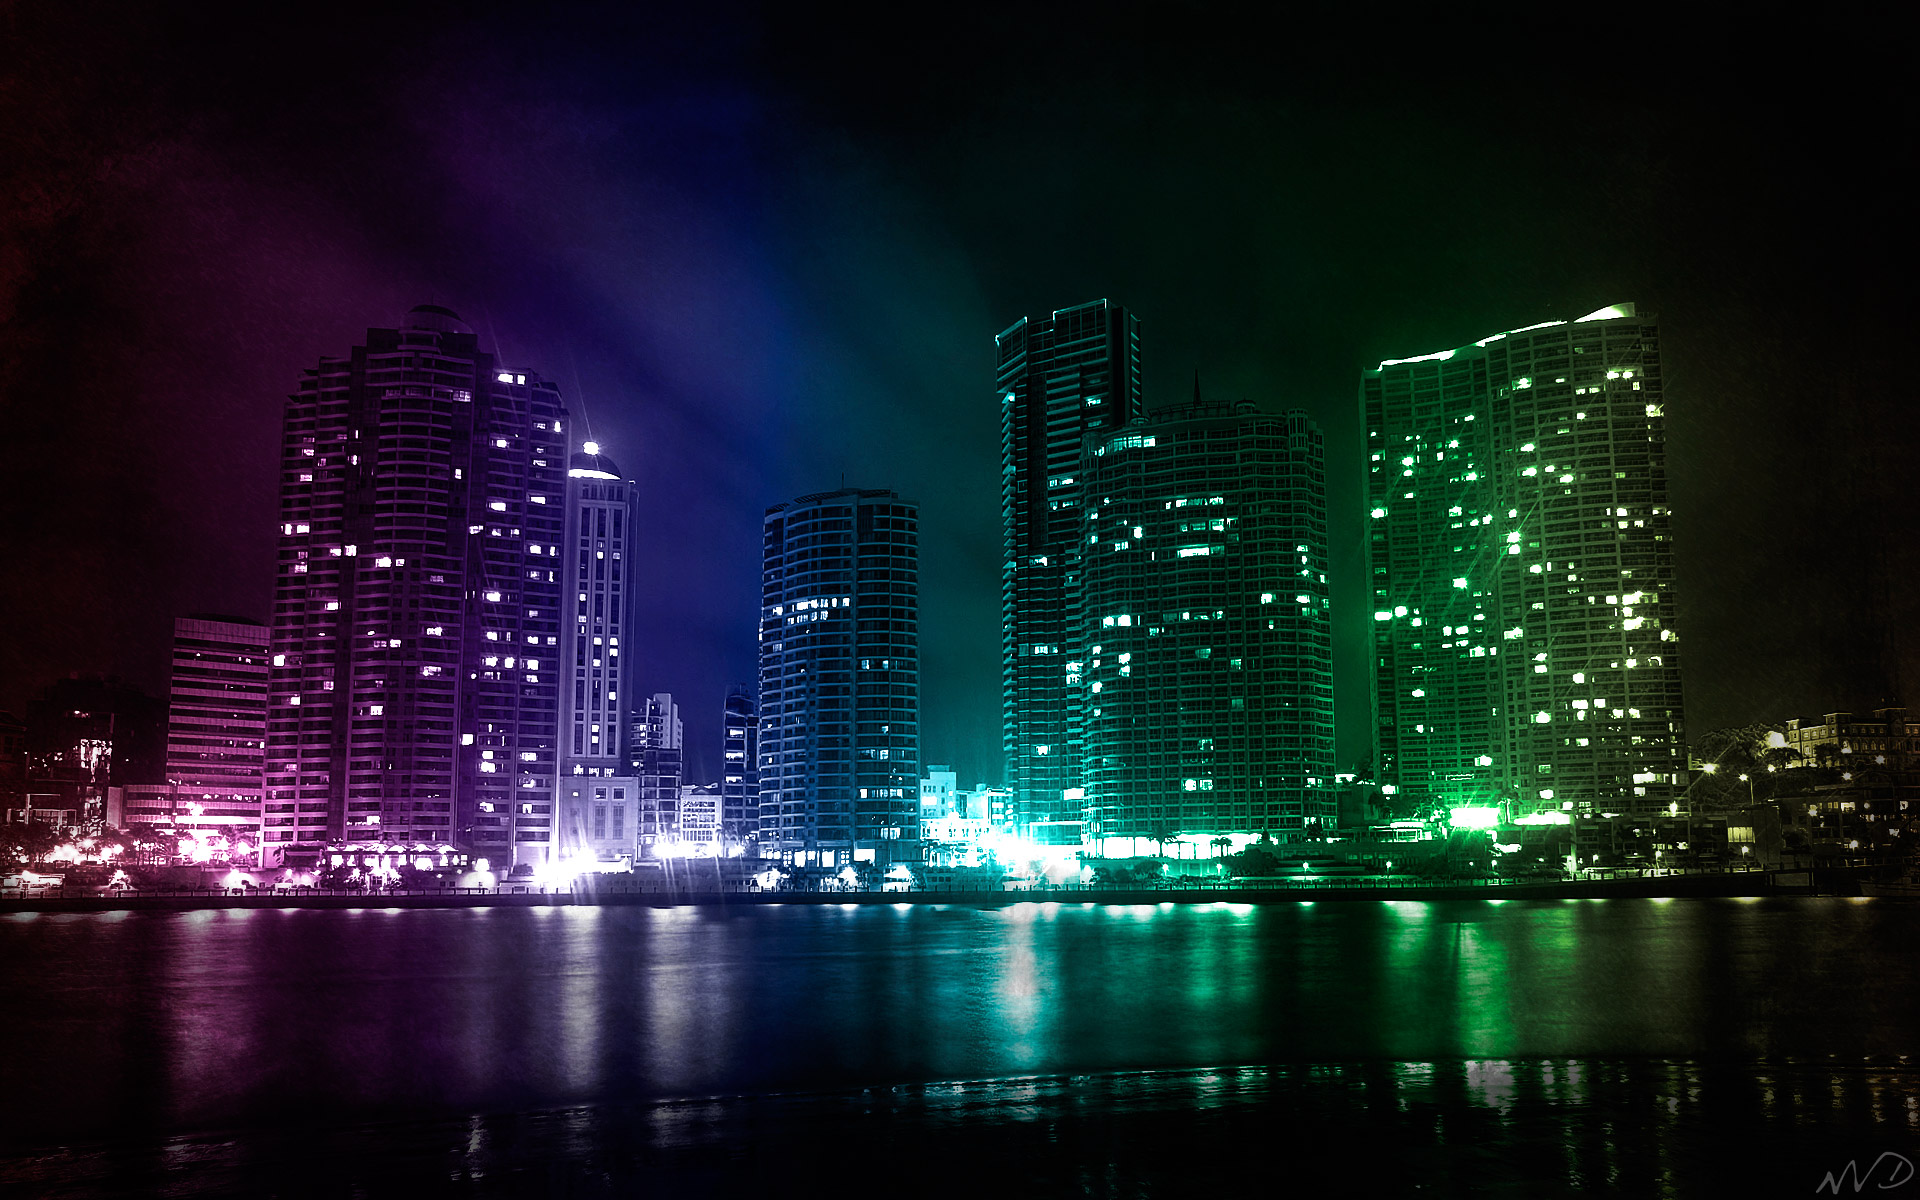 LIGHTS HD WALLPAPER BACKGROUNDSHDIMAGESSEARCH WALLPAPER Search 1920x1200